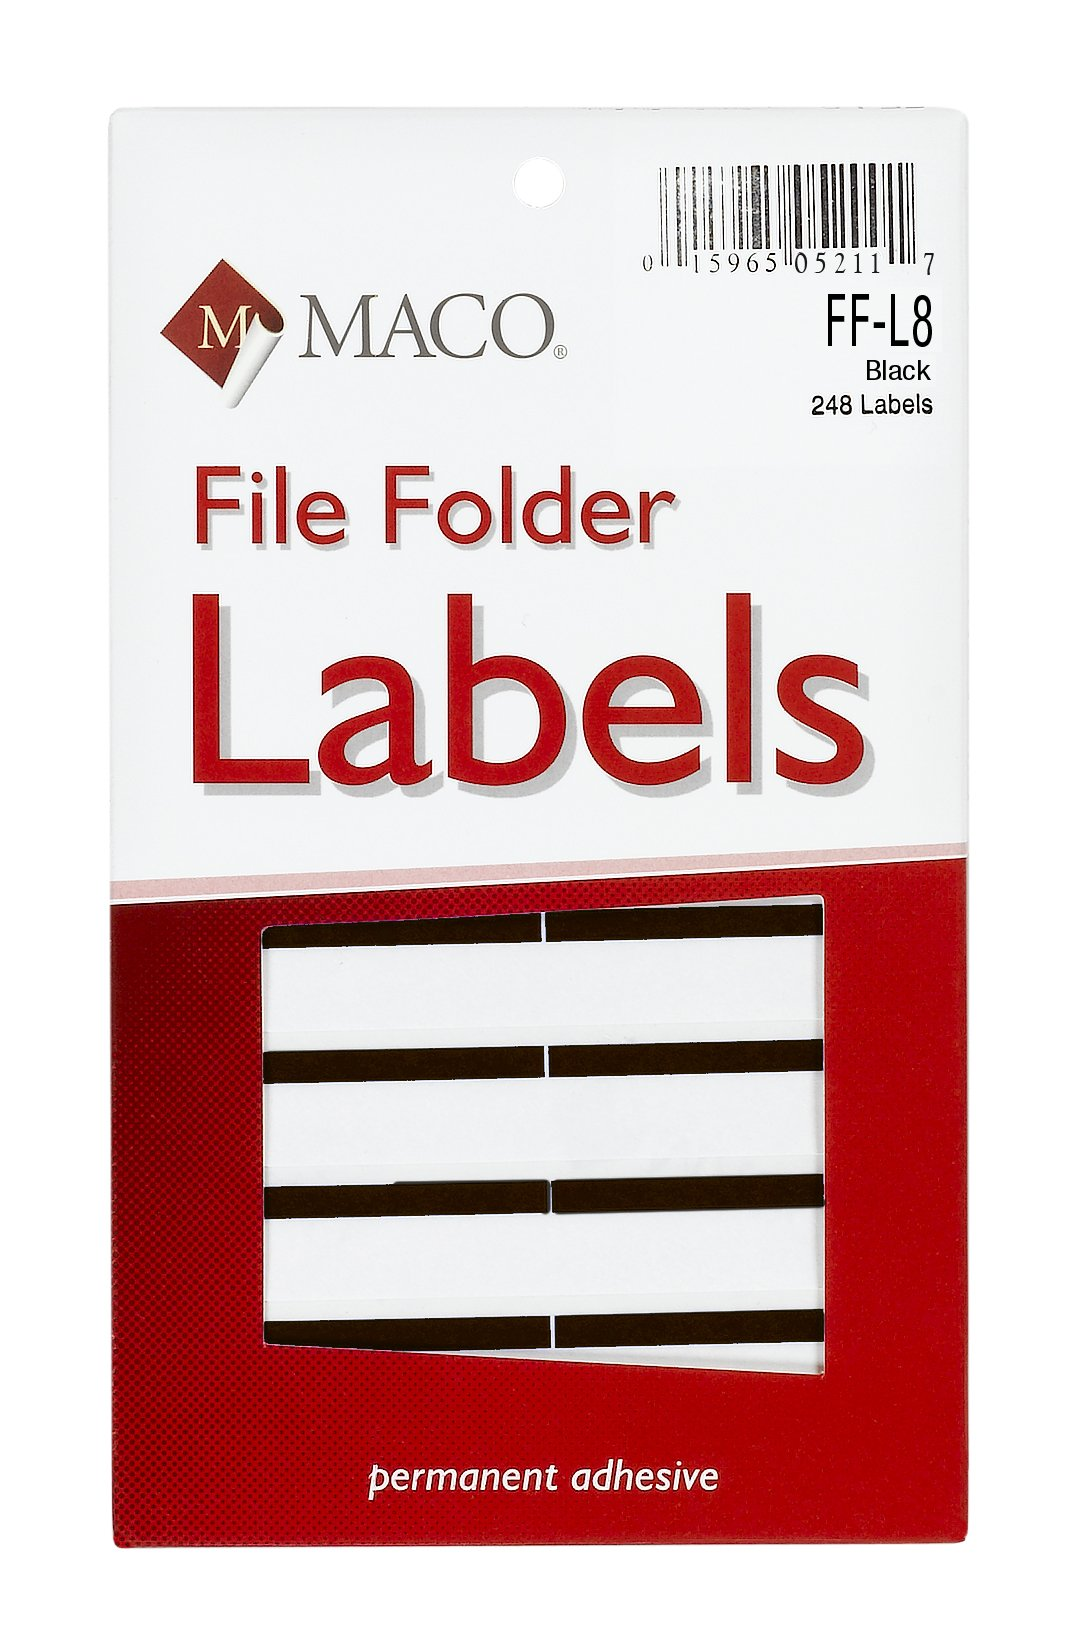 MACO Black File Folder Labels, 9/16 x 3-7/16 Inches, 248 Per Box (FF-L8)